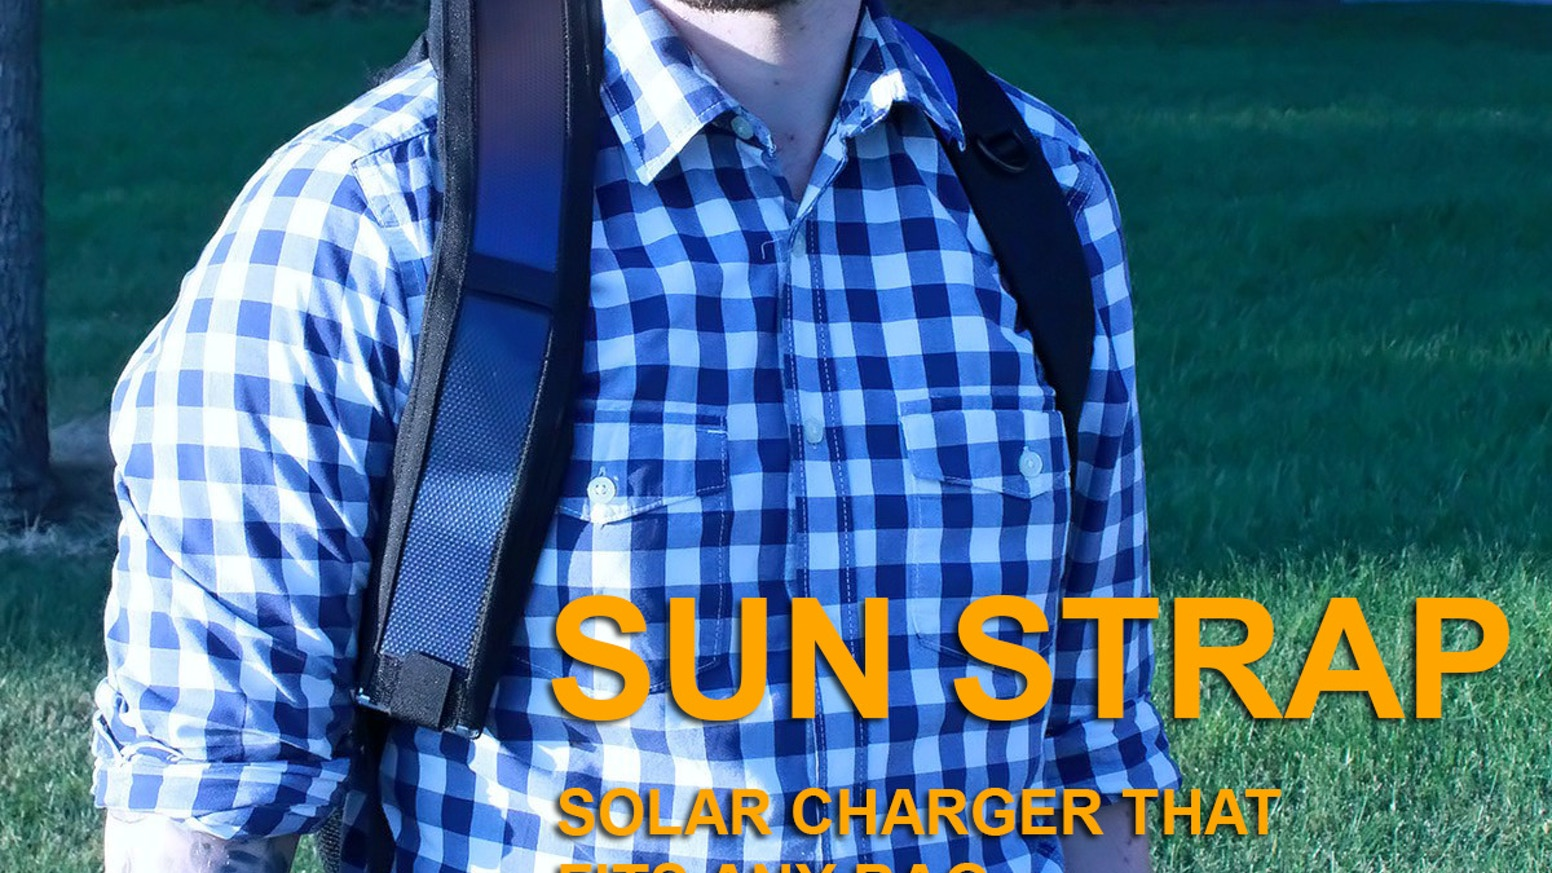 Flexible solar panel that fits around any bag strap and charges any USB device like your smartphone, tablet or camera.